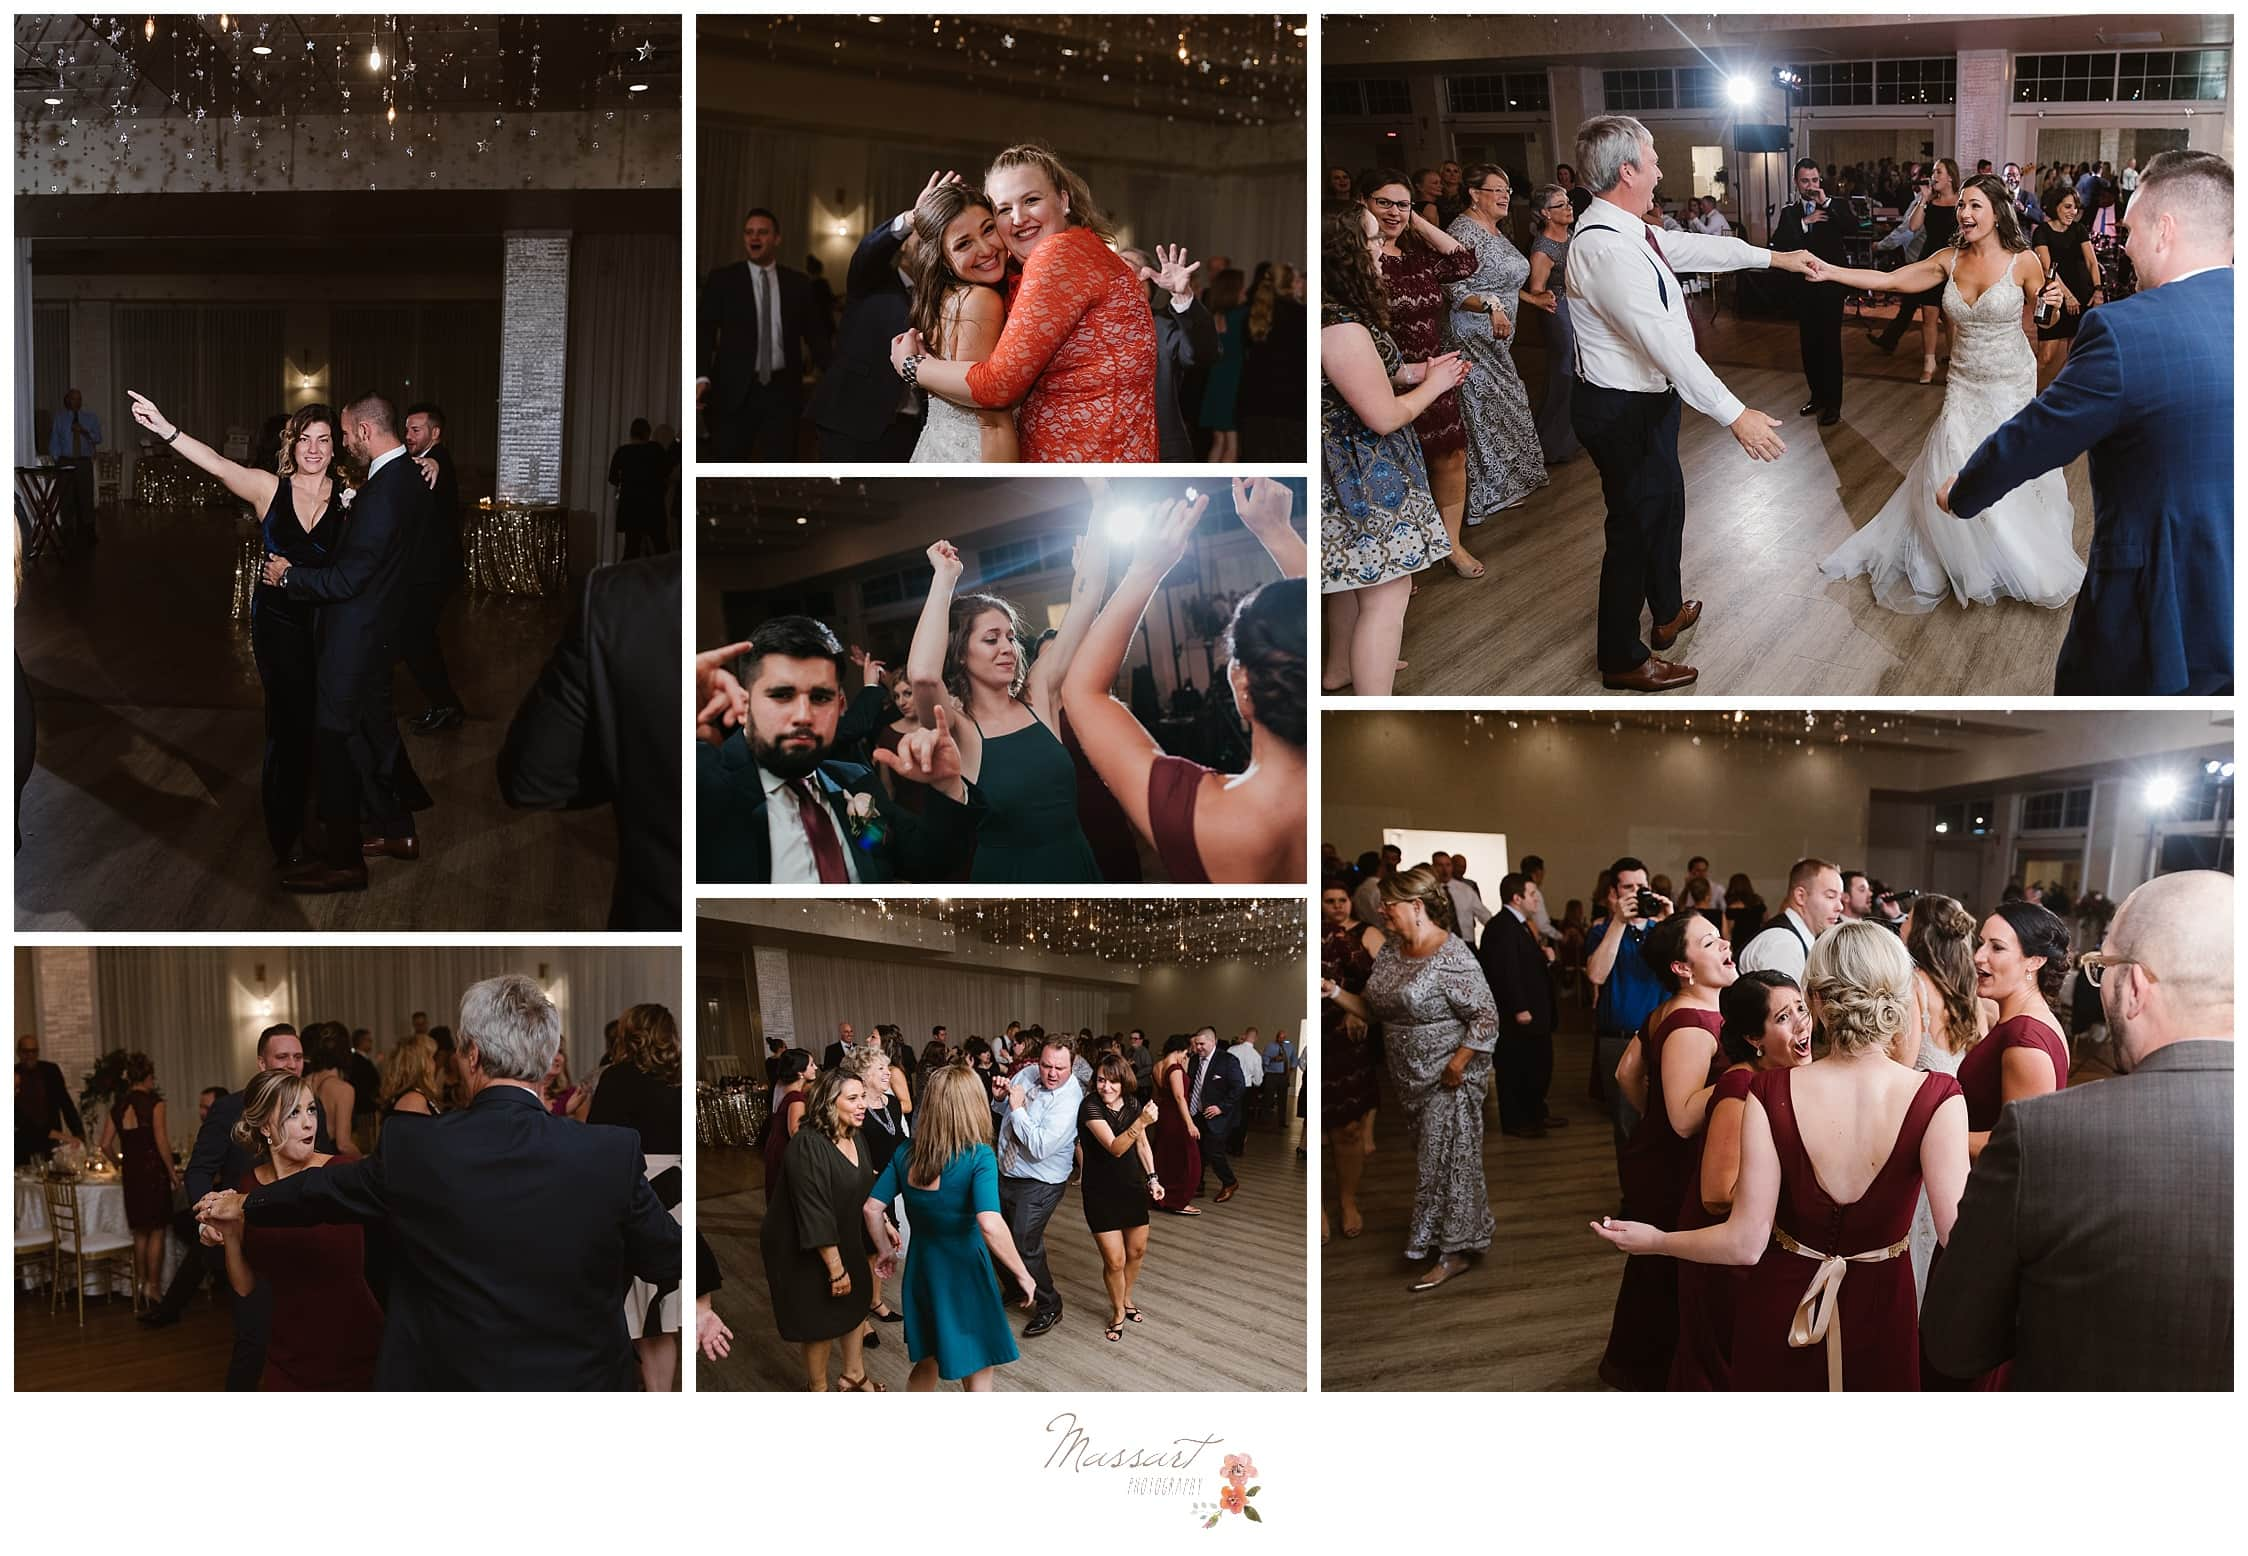 Wedding guests have fun dancing at the Atlantic Resort wedding reception photographed by Massart Photography RI